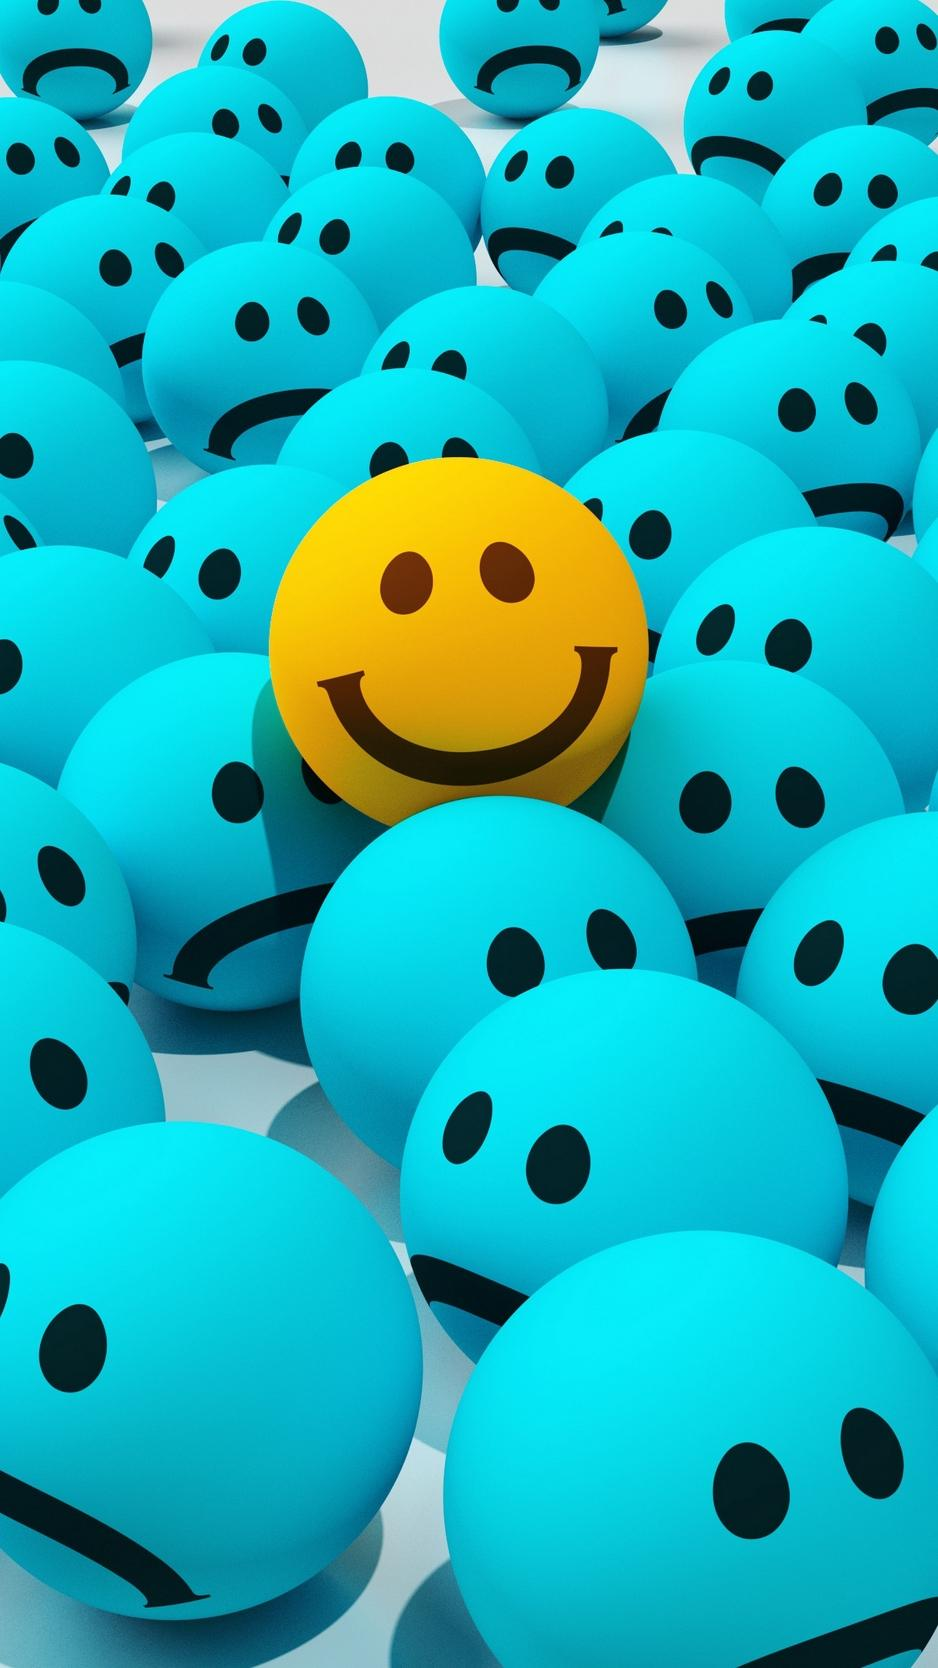 Smile HD iPhone Wallpapers - Wallpaper Cave